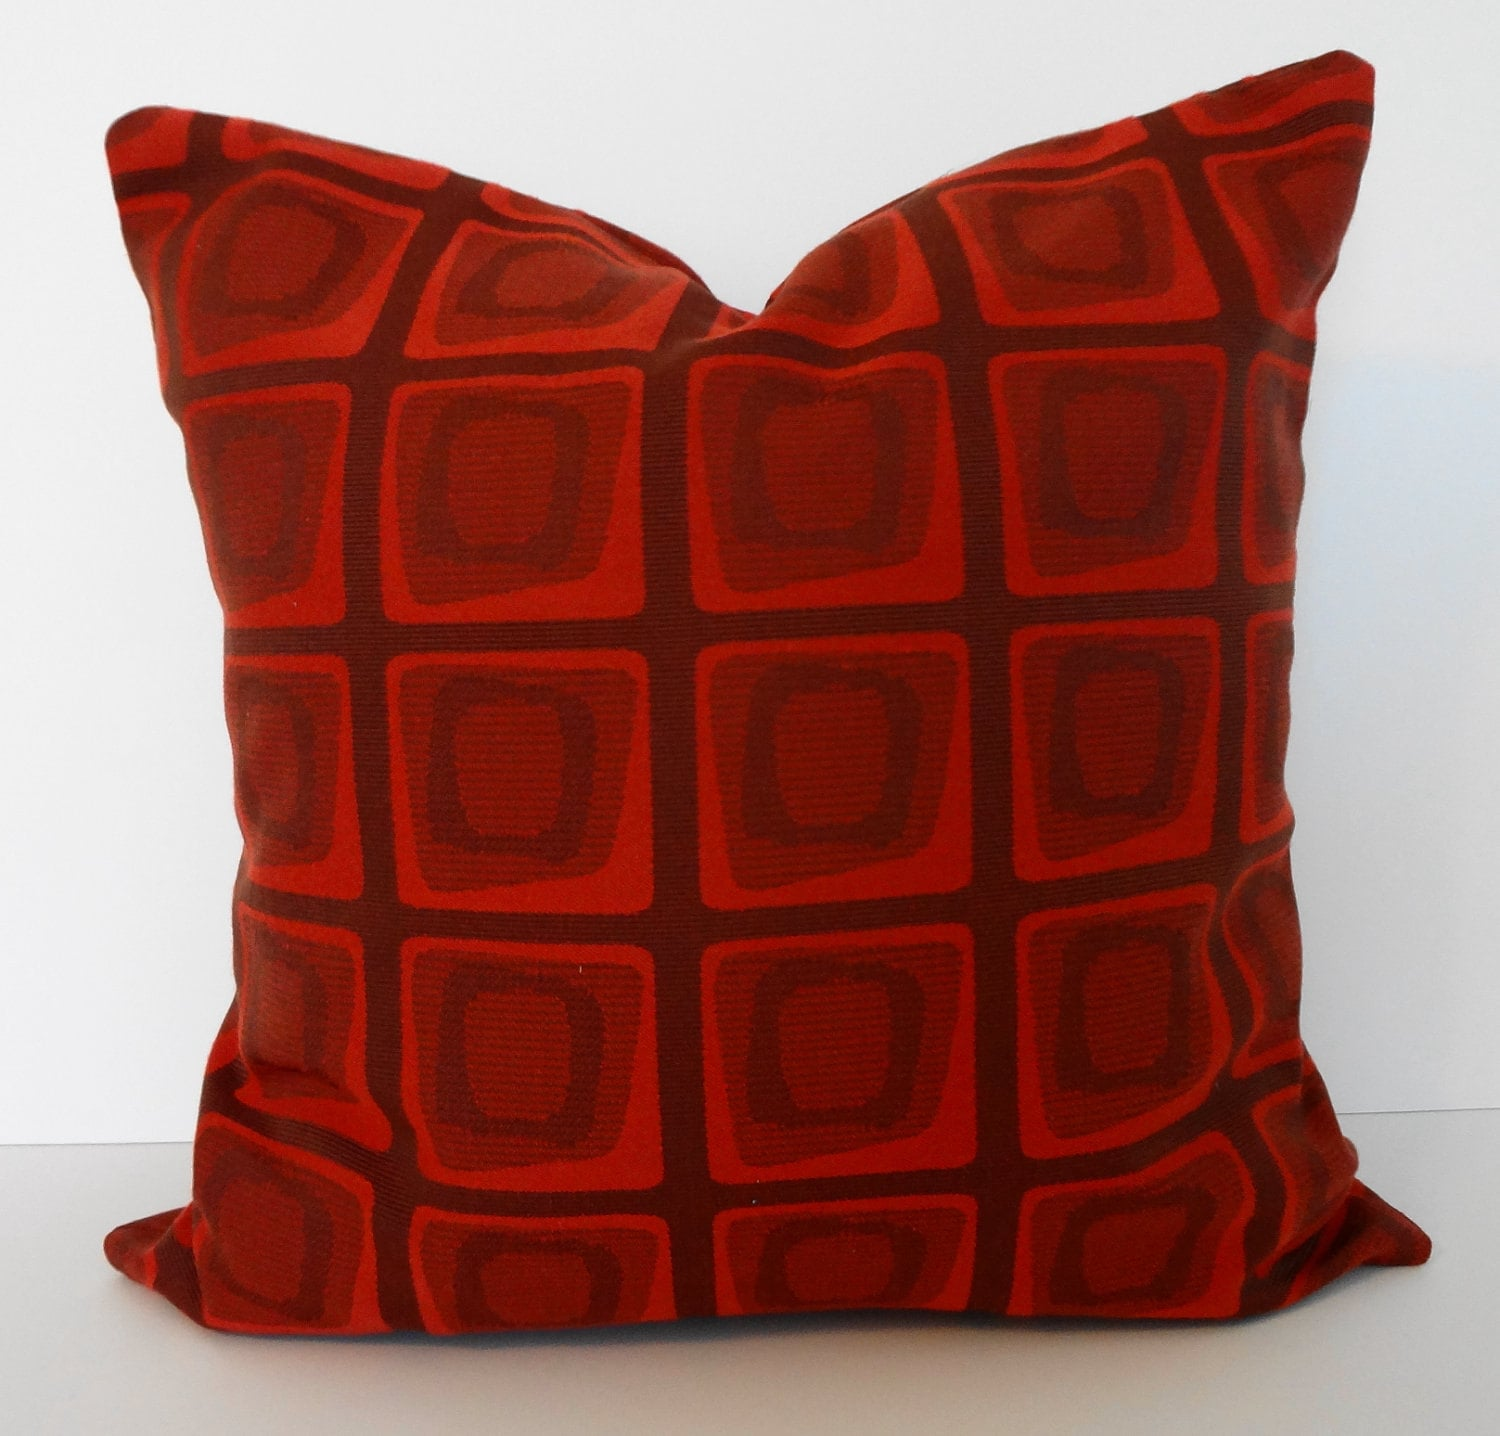 Throw Pillow Red : Geometric Decorative Pillow Cover Red Brown Throw by pillows4fun